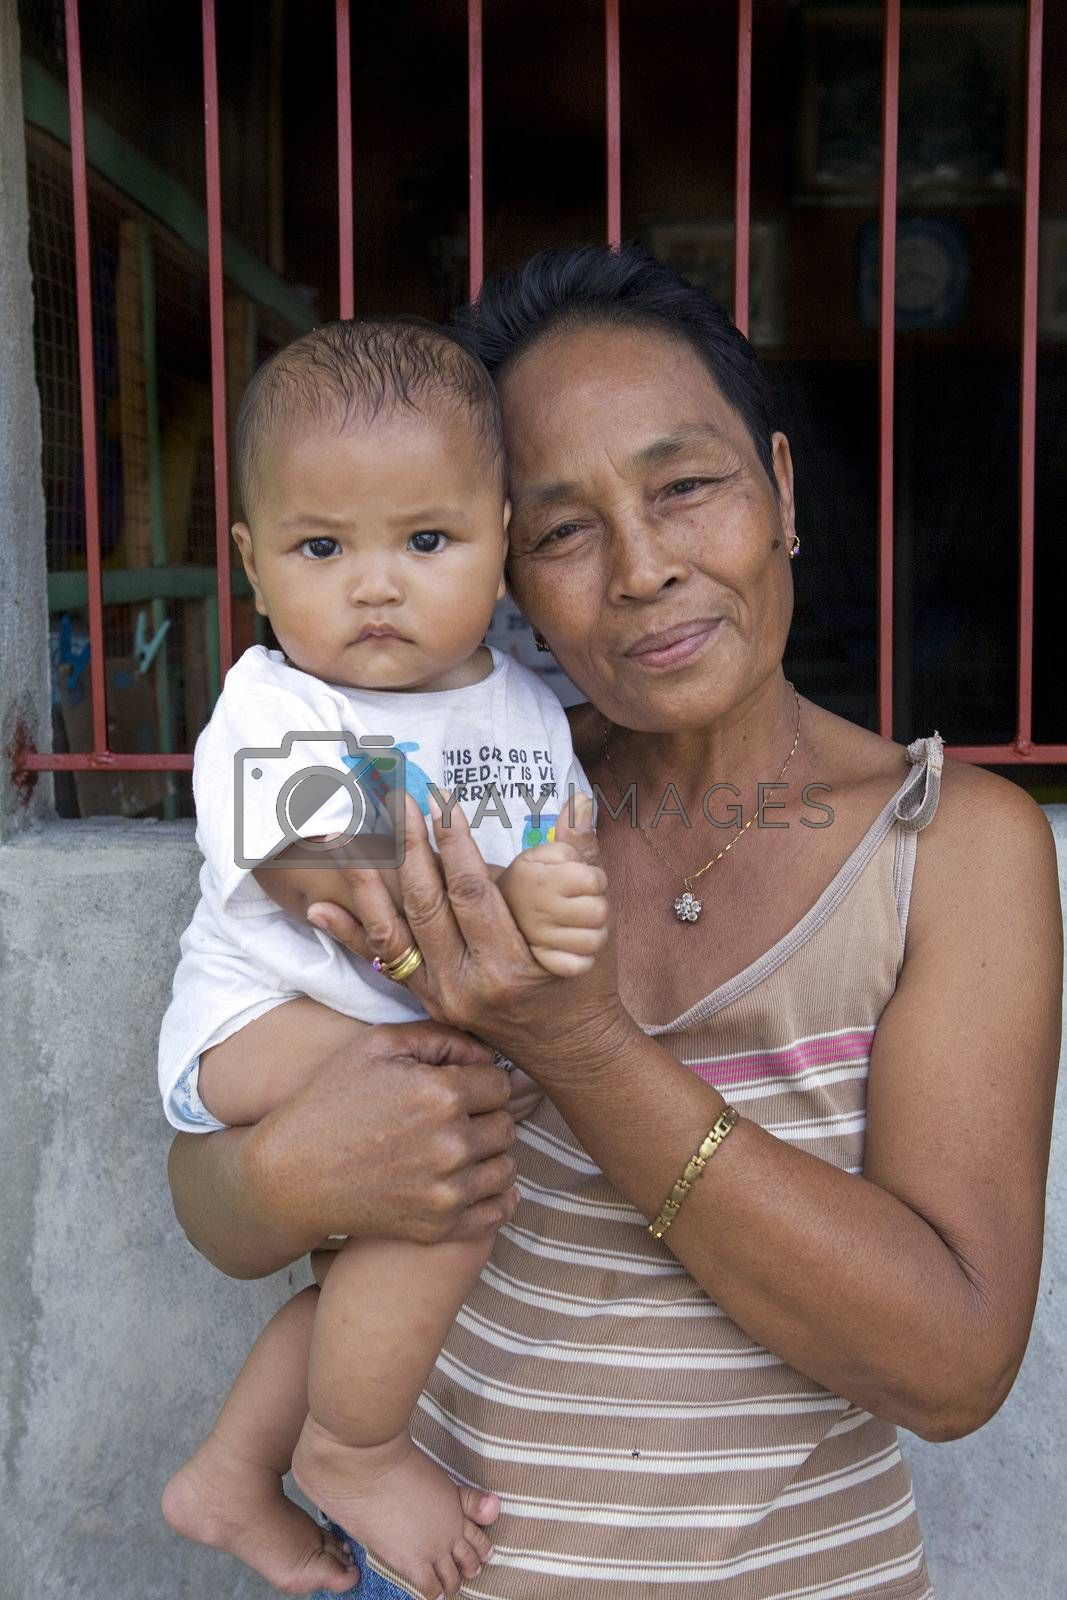 May 2012 - Cadiz City, Negros Oriental, Philippines - Pride and love expressed on the face of a Filipino grandmother holding her baby boy grandchild. Family is most important of all in the Philippines.